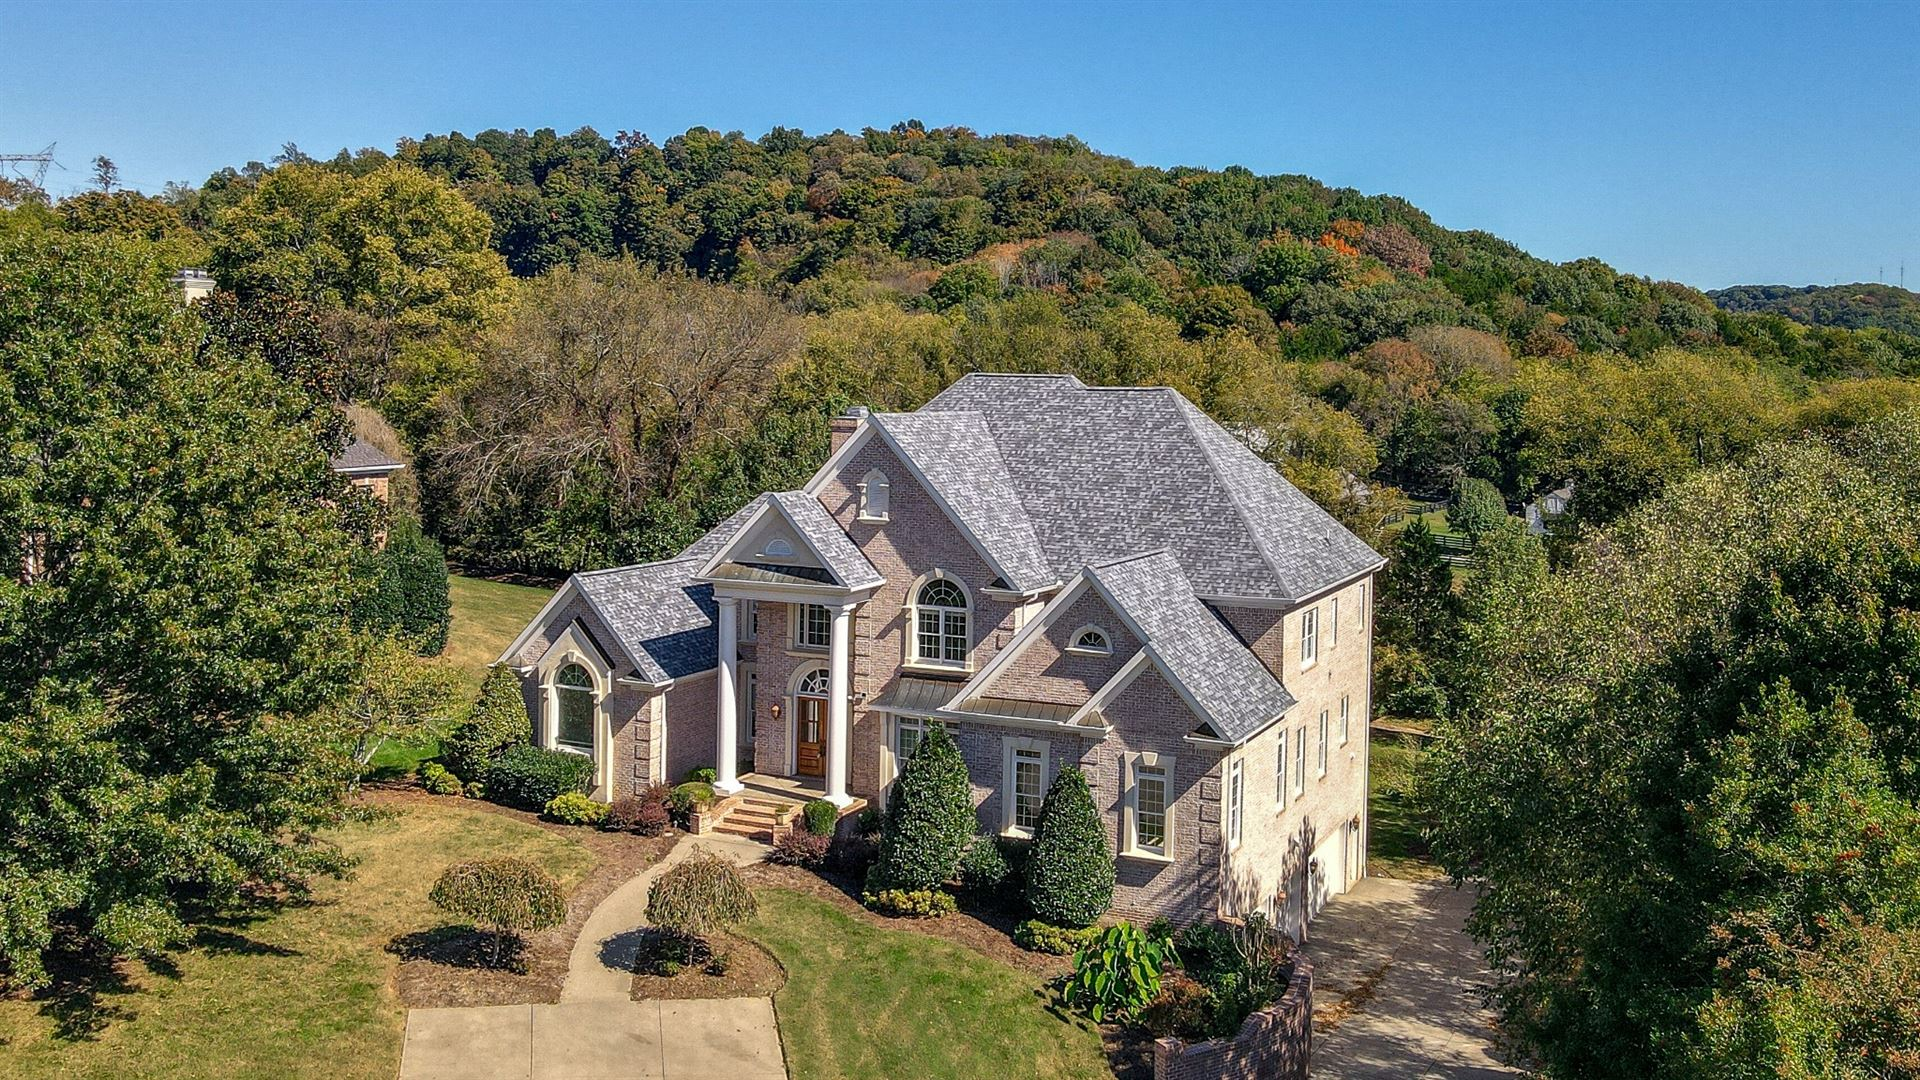 389 Lake Valley Dr, Franklin, TN 37069 - MLS#: 2199562